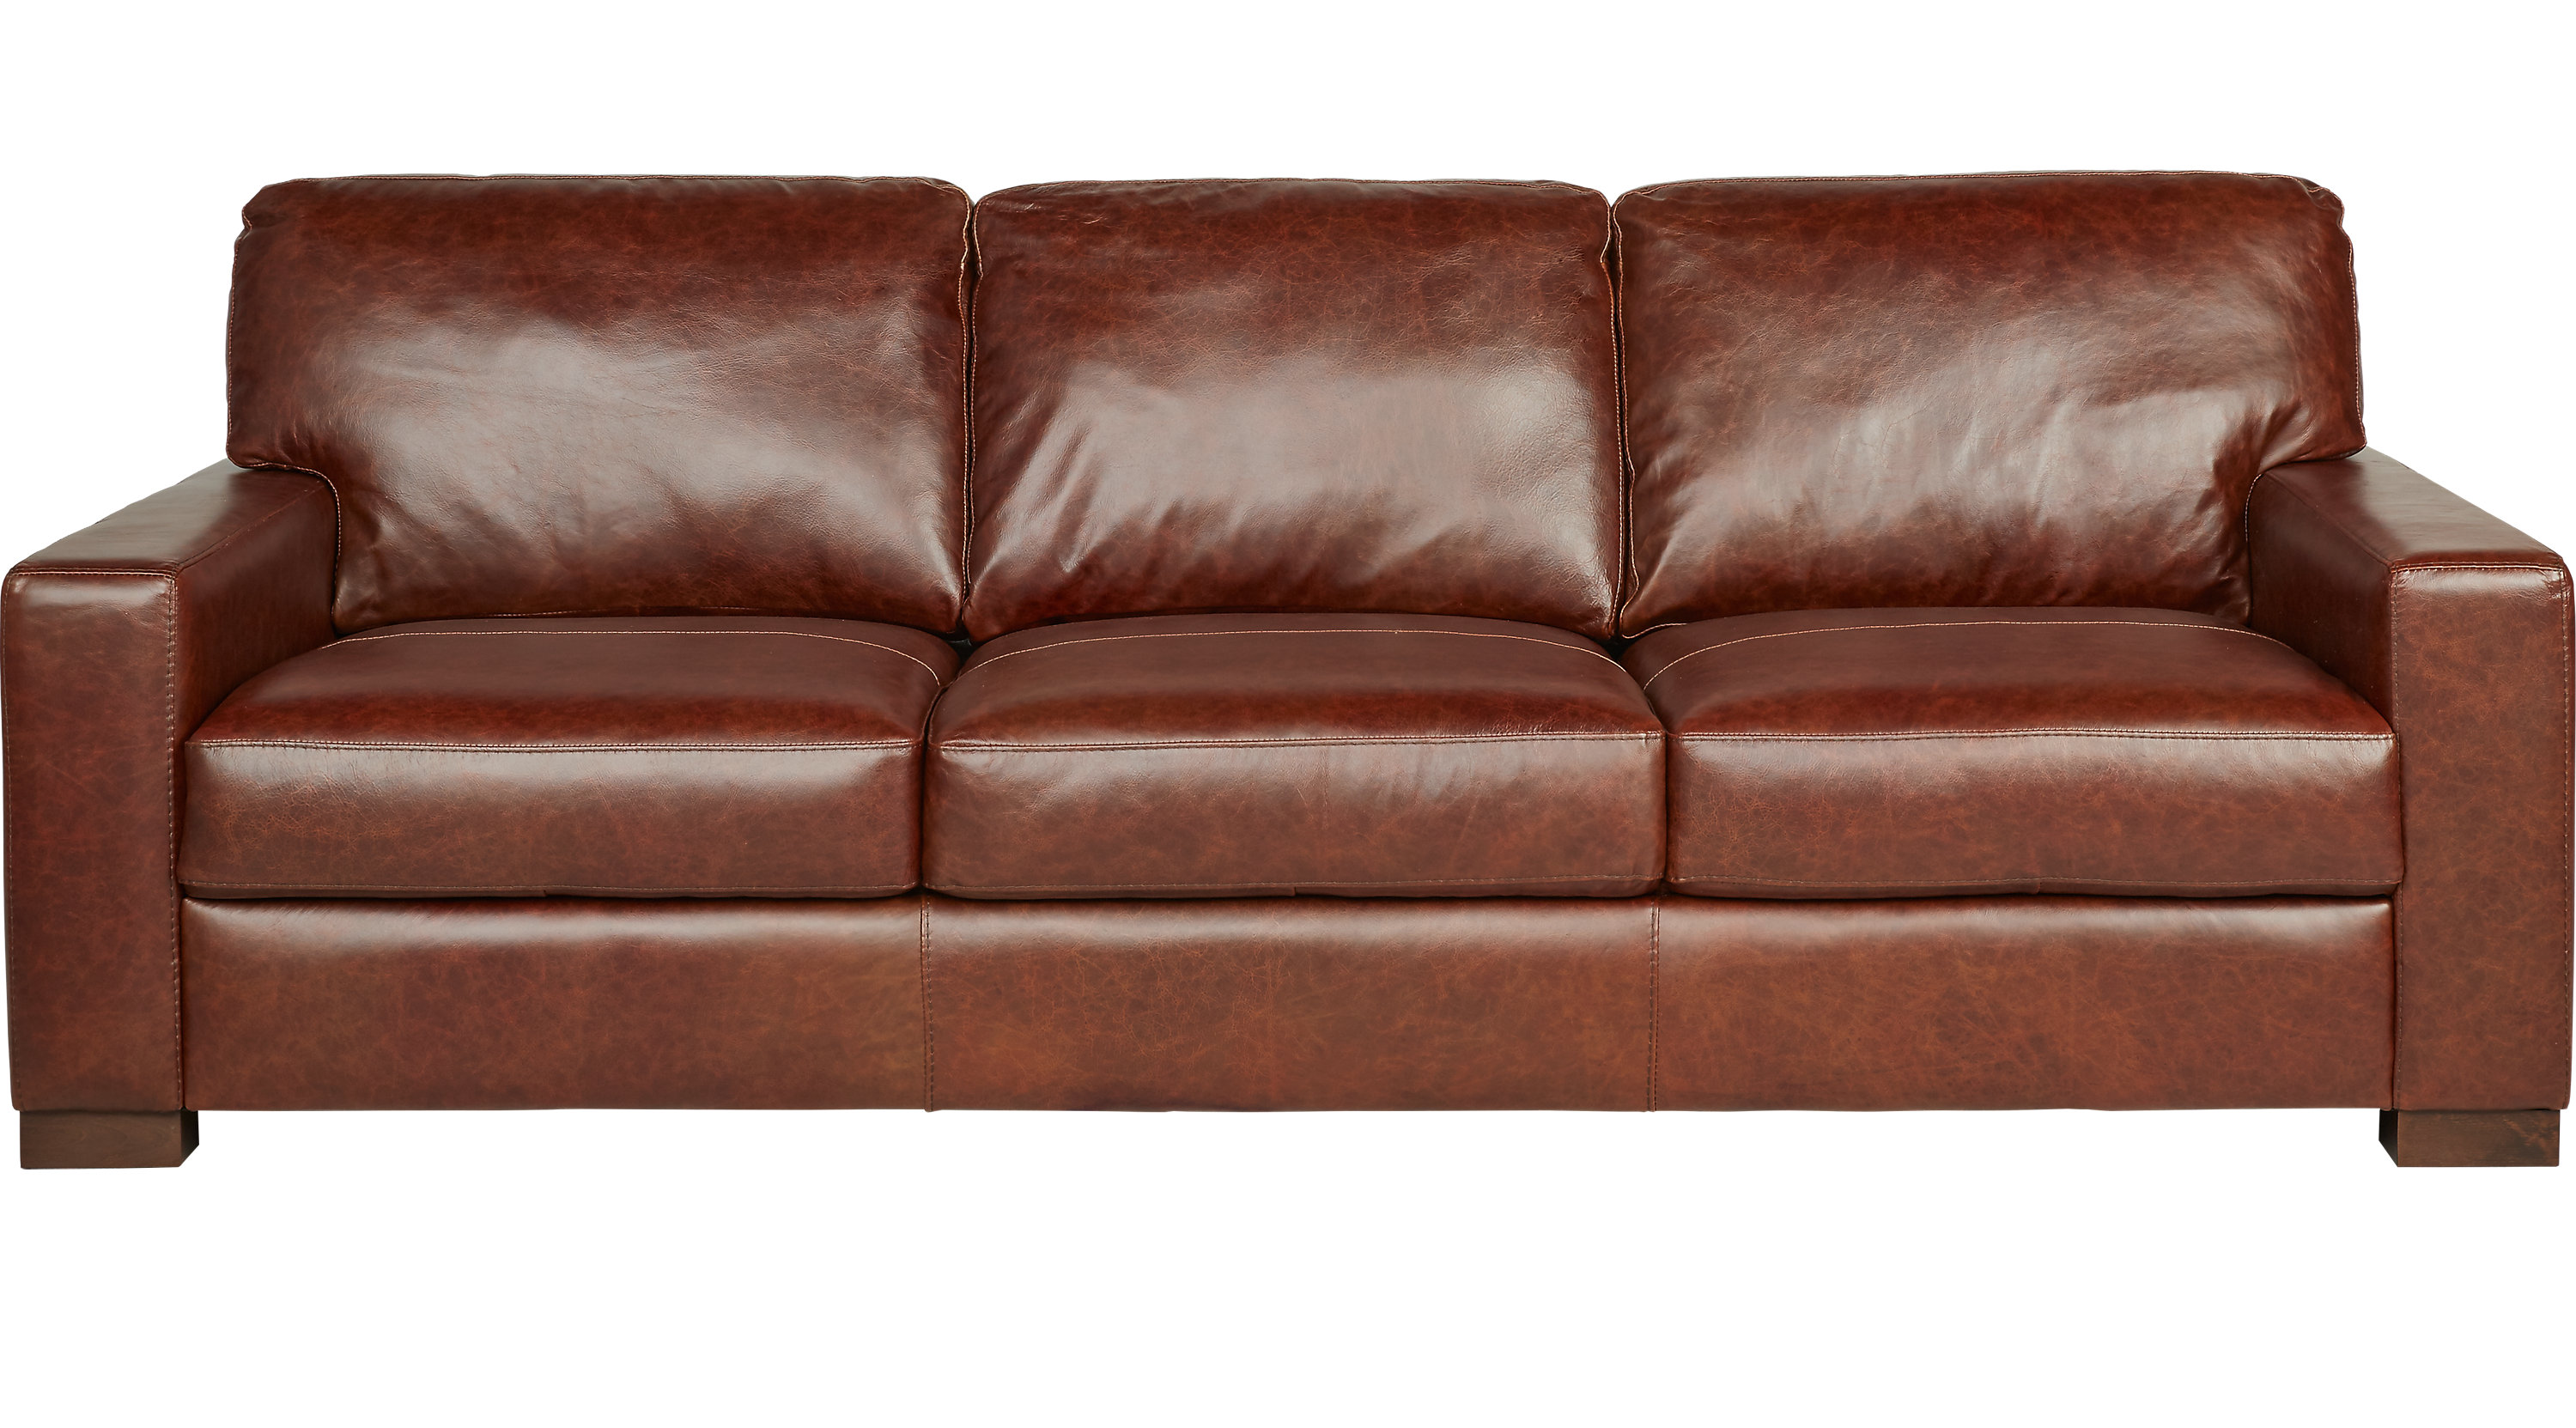 $999.99 - Vicario Brown Leather Sofa - Classic - Transitional,